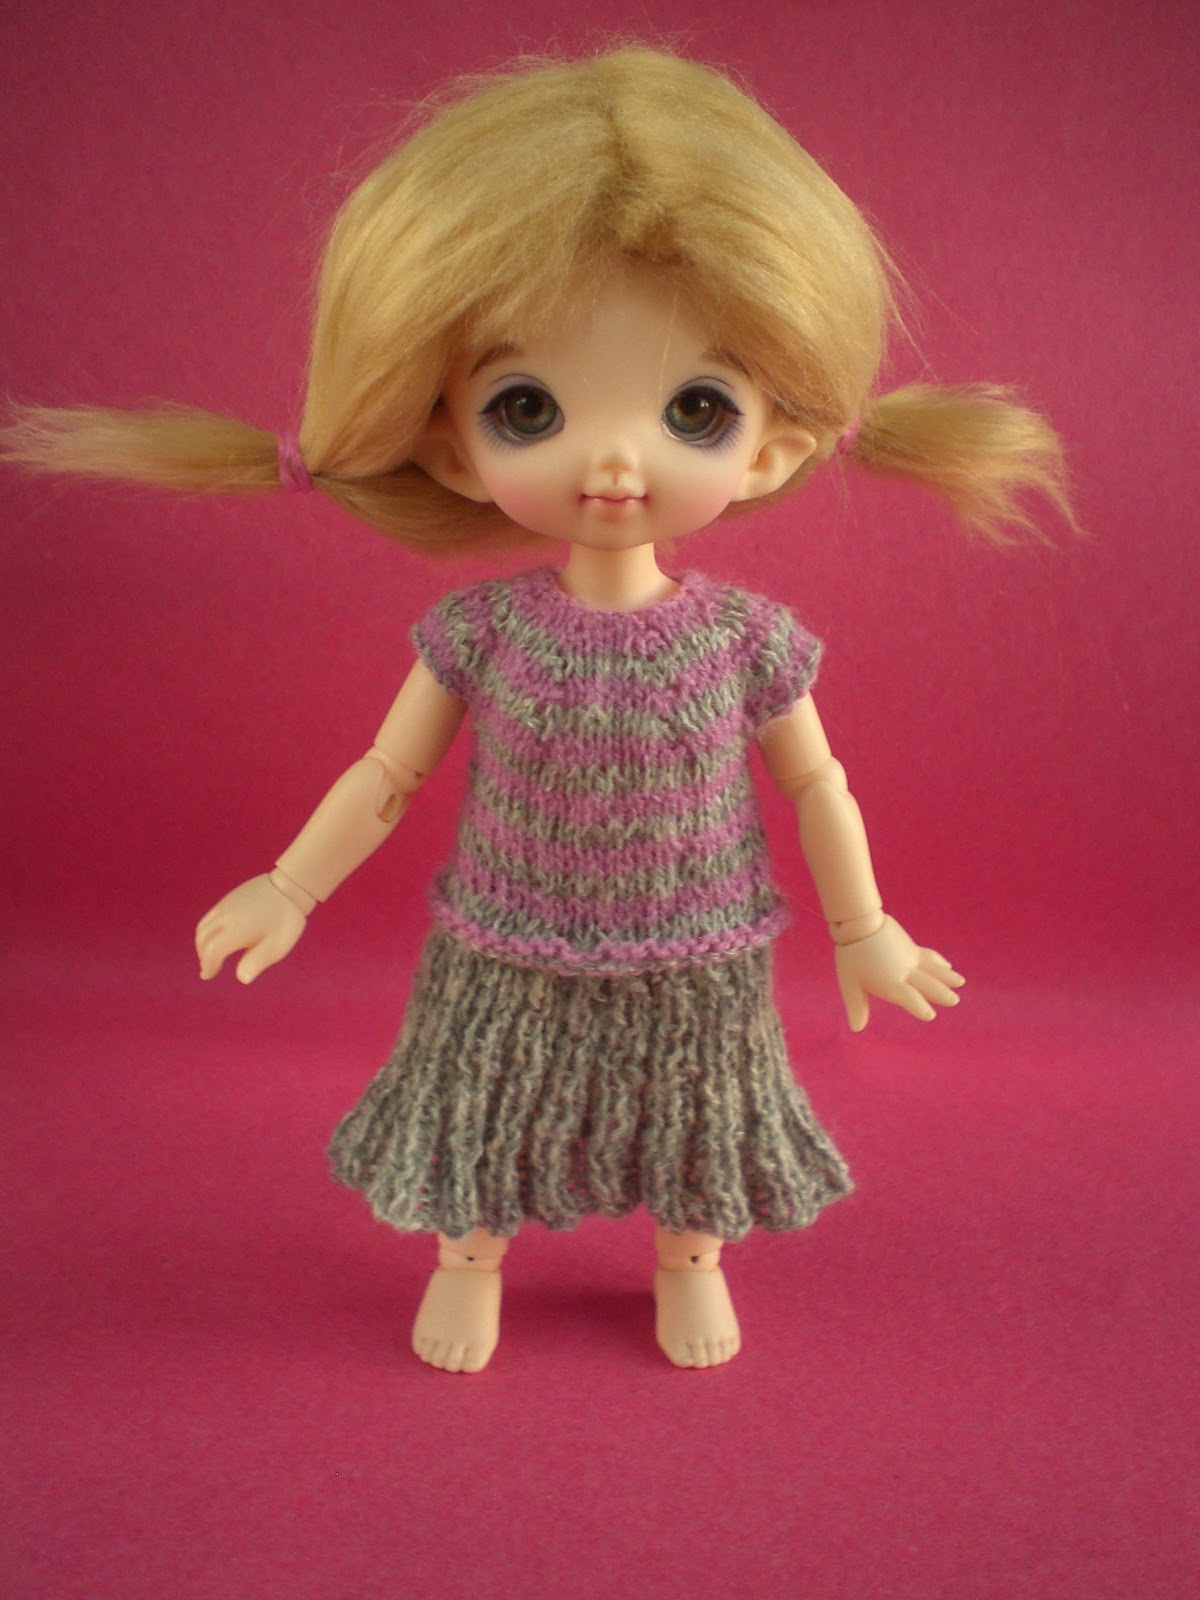 bitstobuy: Guest blog from Anna of beepbeepdesigns - Knitting for bjd